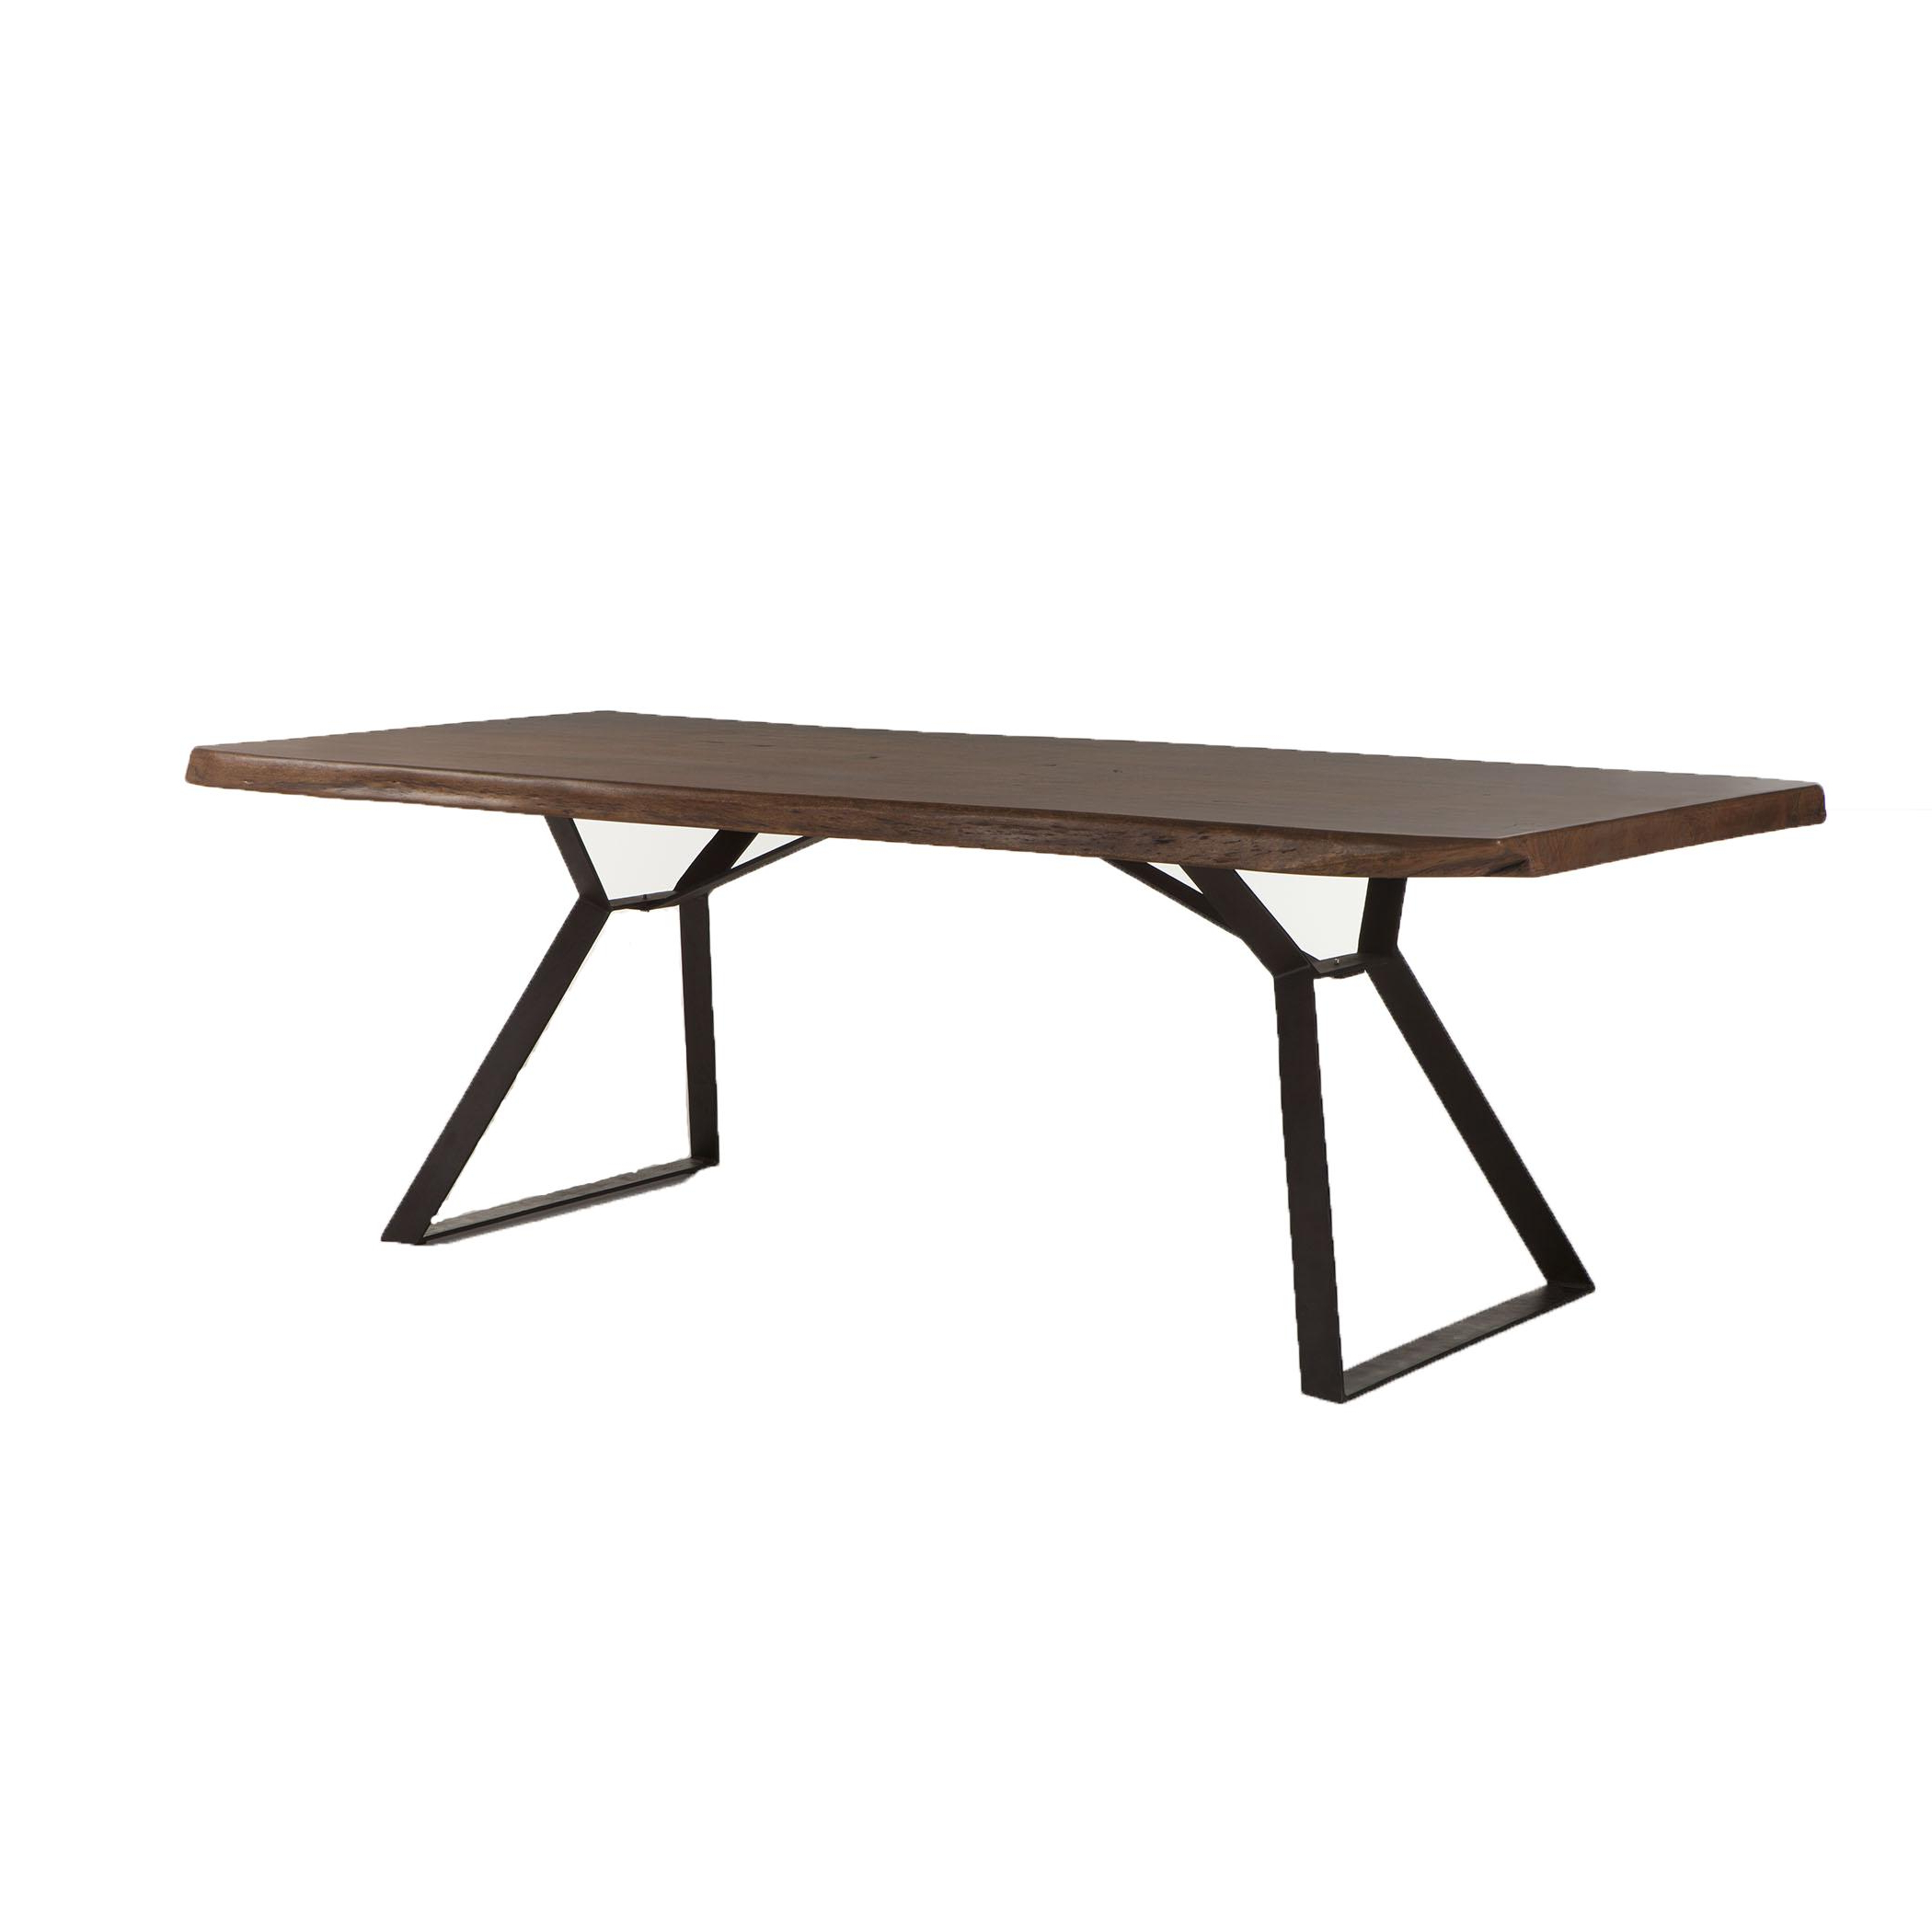 "Best And Newest Acacia Top Dining Tables With Metal Legs Throughout Home Trends &design London Loft Collection Casual 80"" Wood (View 17 of 30)"